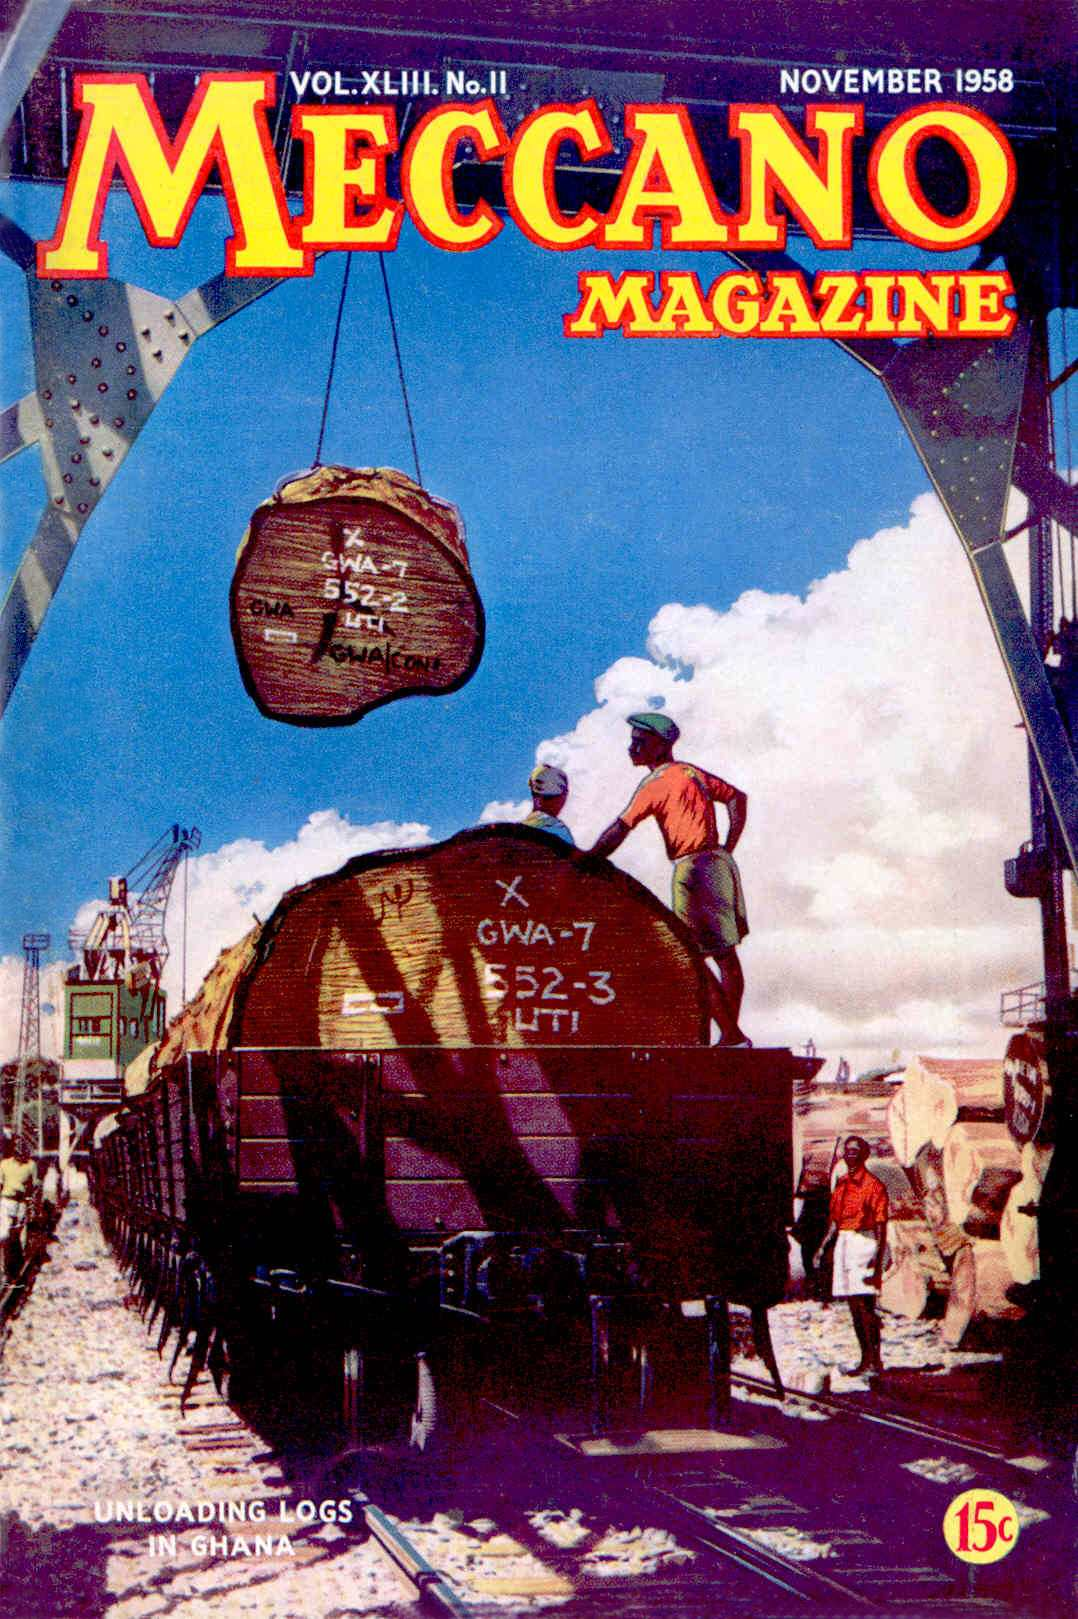 UK Meccano Magazine November 1958 Front cover